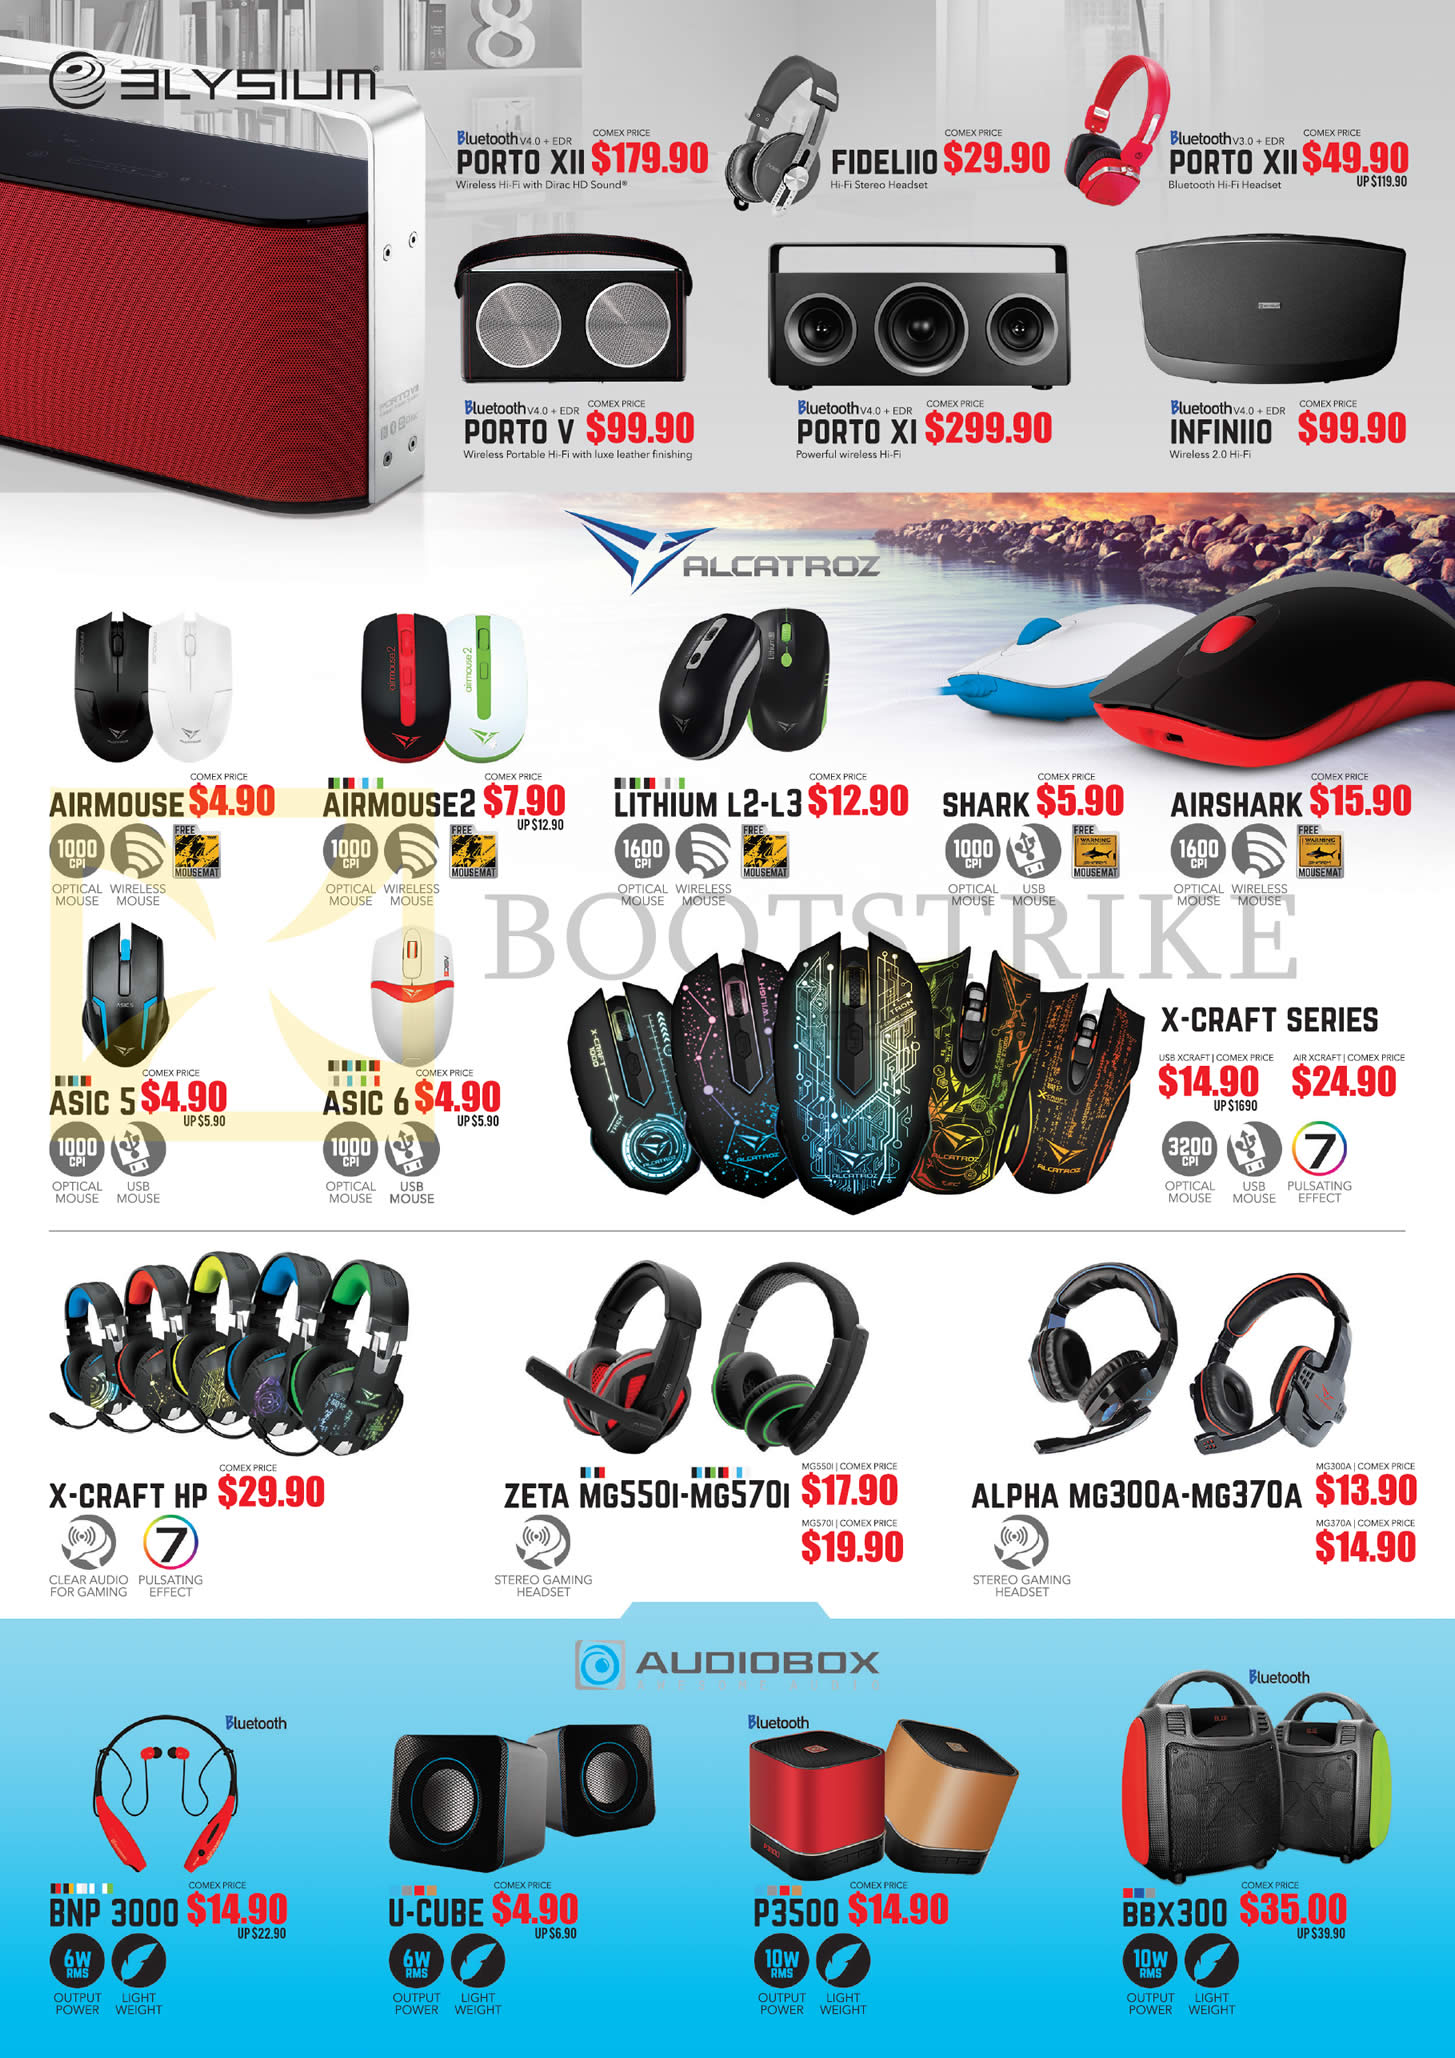 COMEX 2016 price list image brochure of Leapfrog Elysium Bluetooth Speakers, Mouse, Headphones, Porto XII, Fideliio, Airmouse, 2, Shark, Lithium L-2, L3, Airshack, Asic 5, 6, X-Craft HP, Zeta MG550I